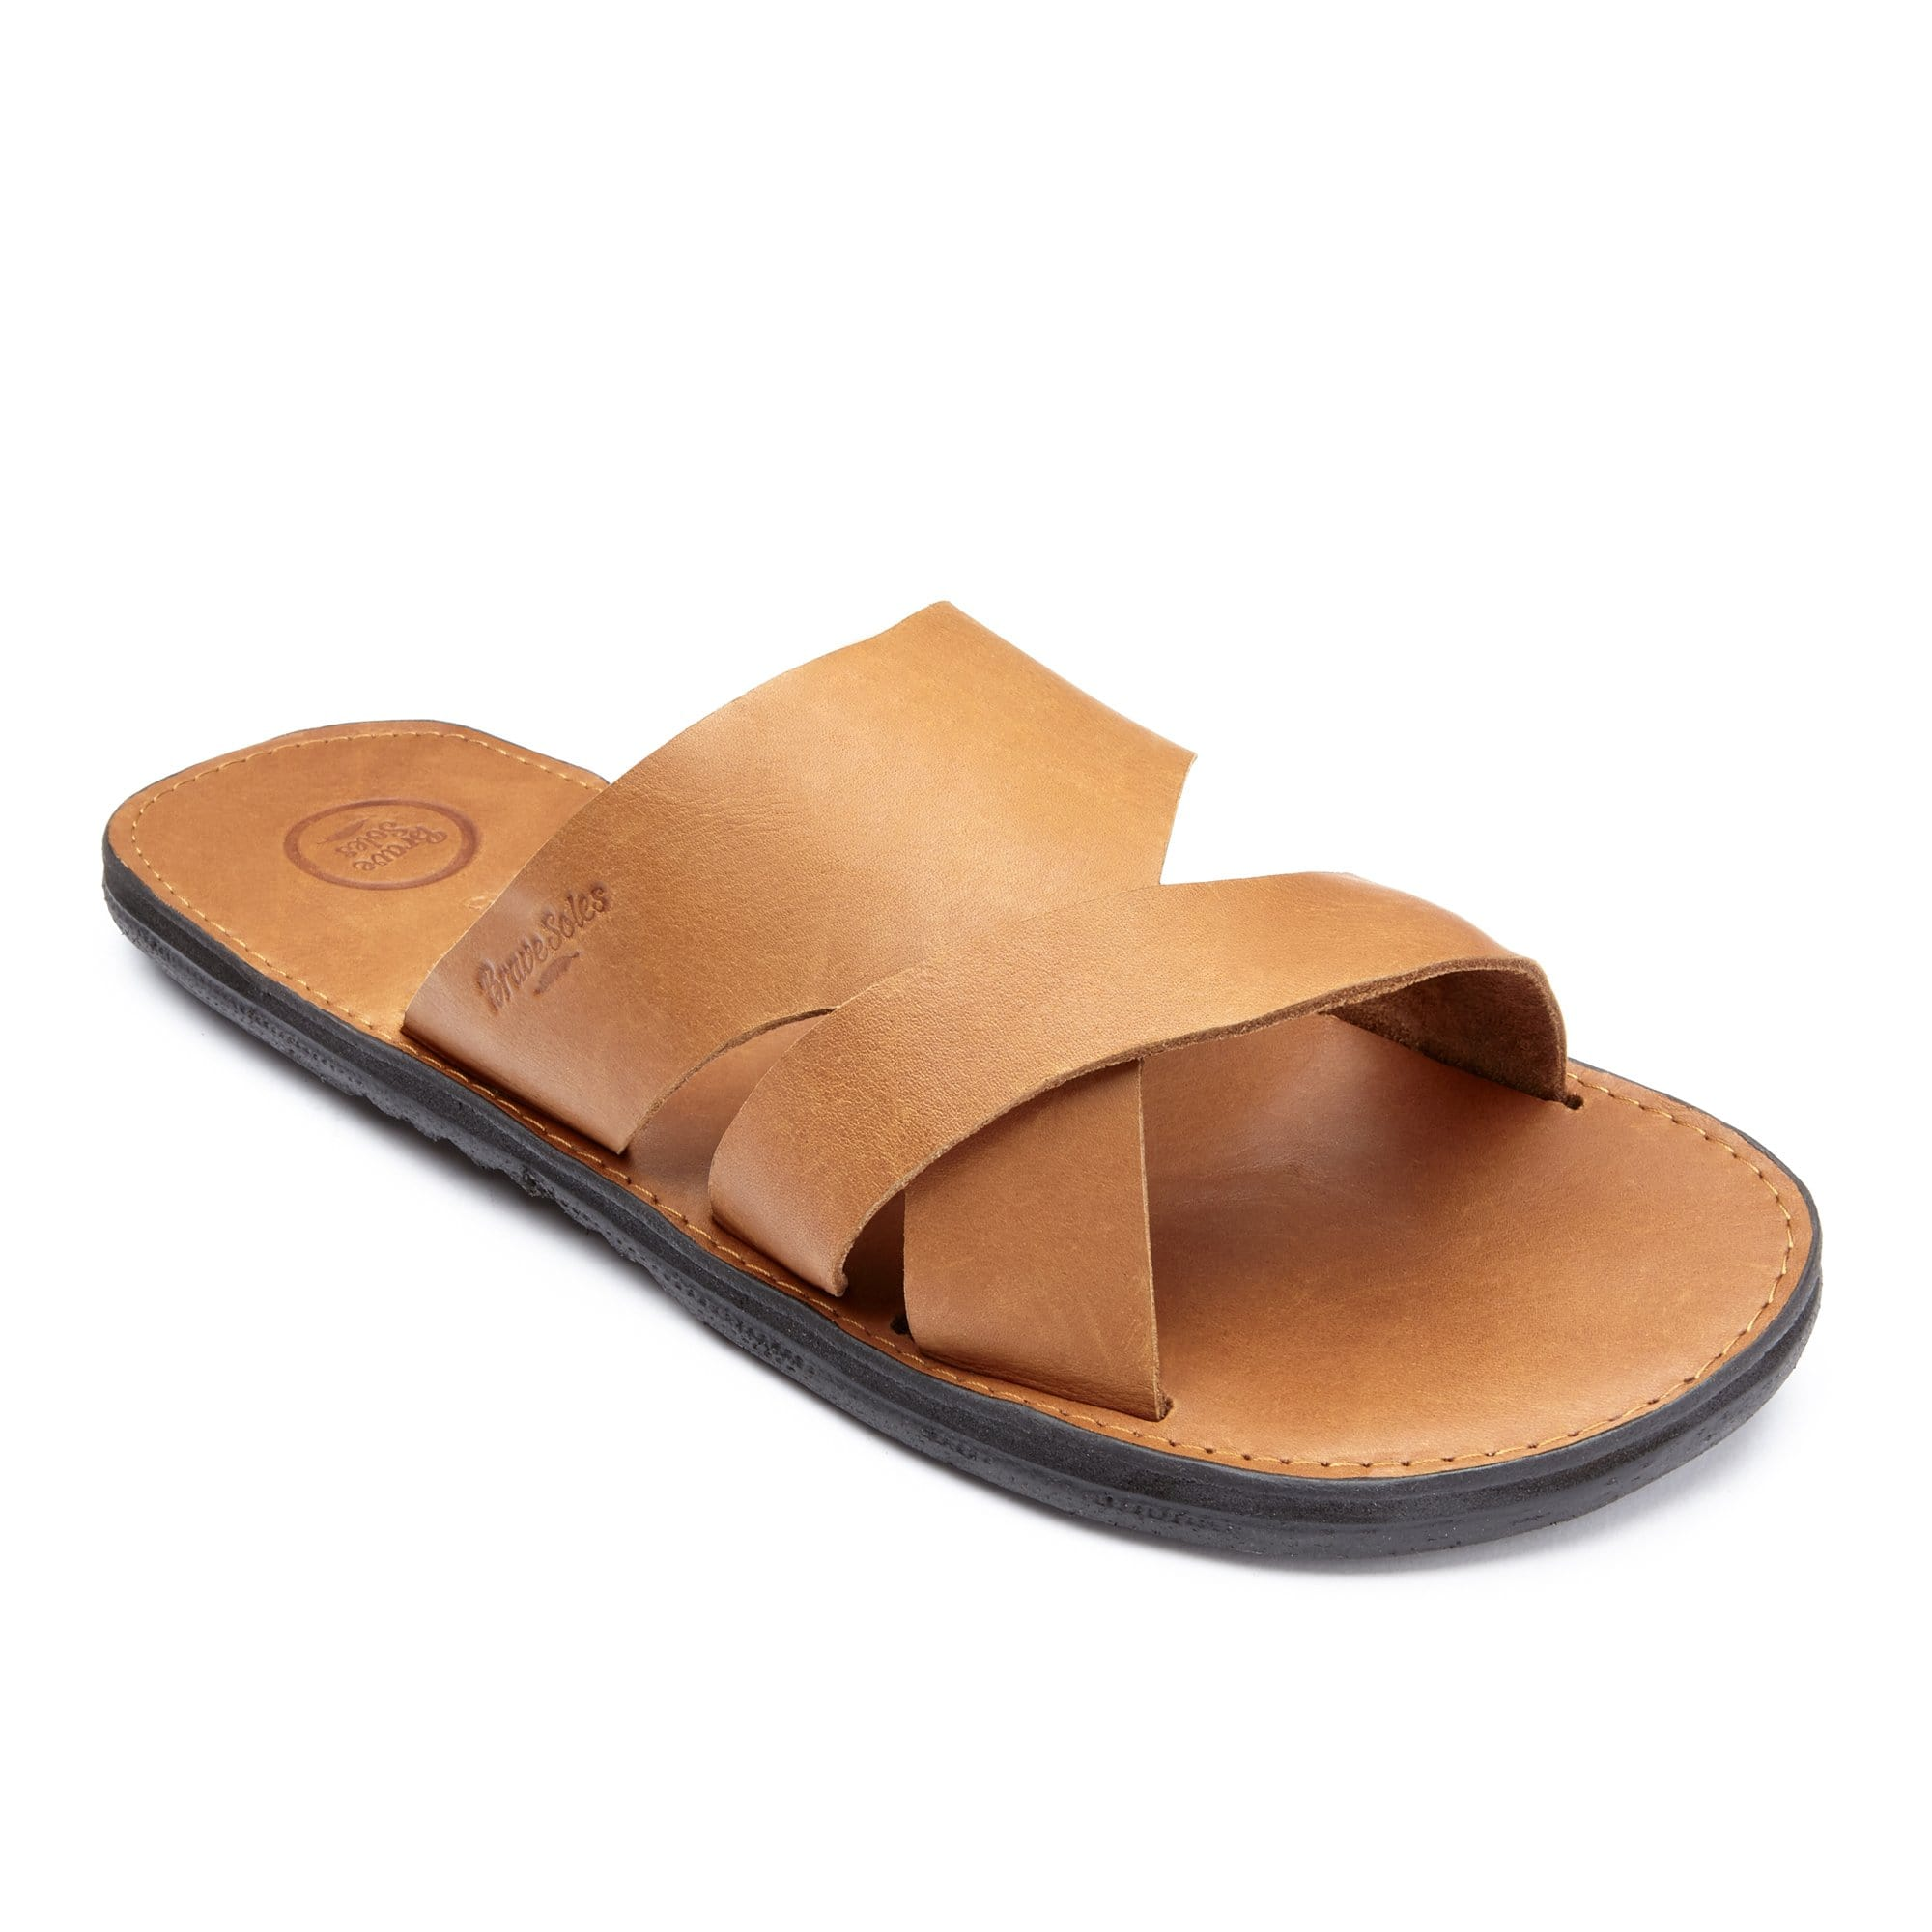 The Mateo Men's Leather Sandal